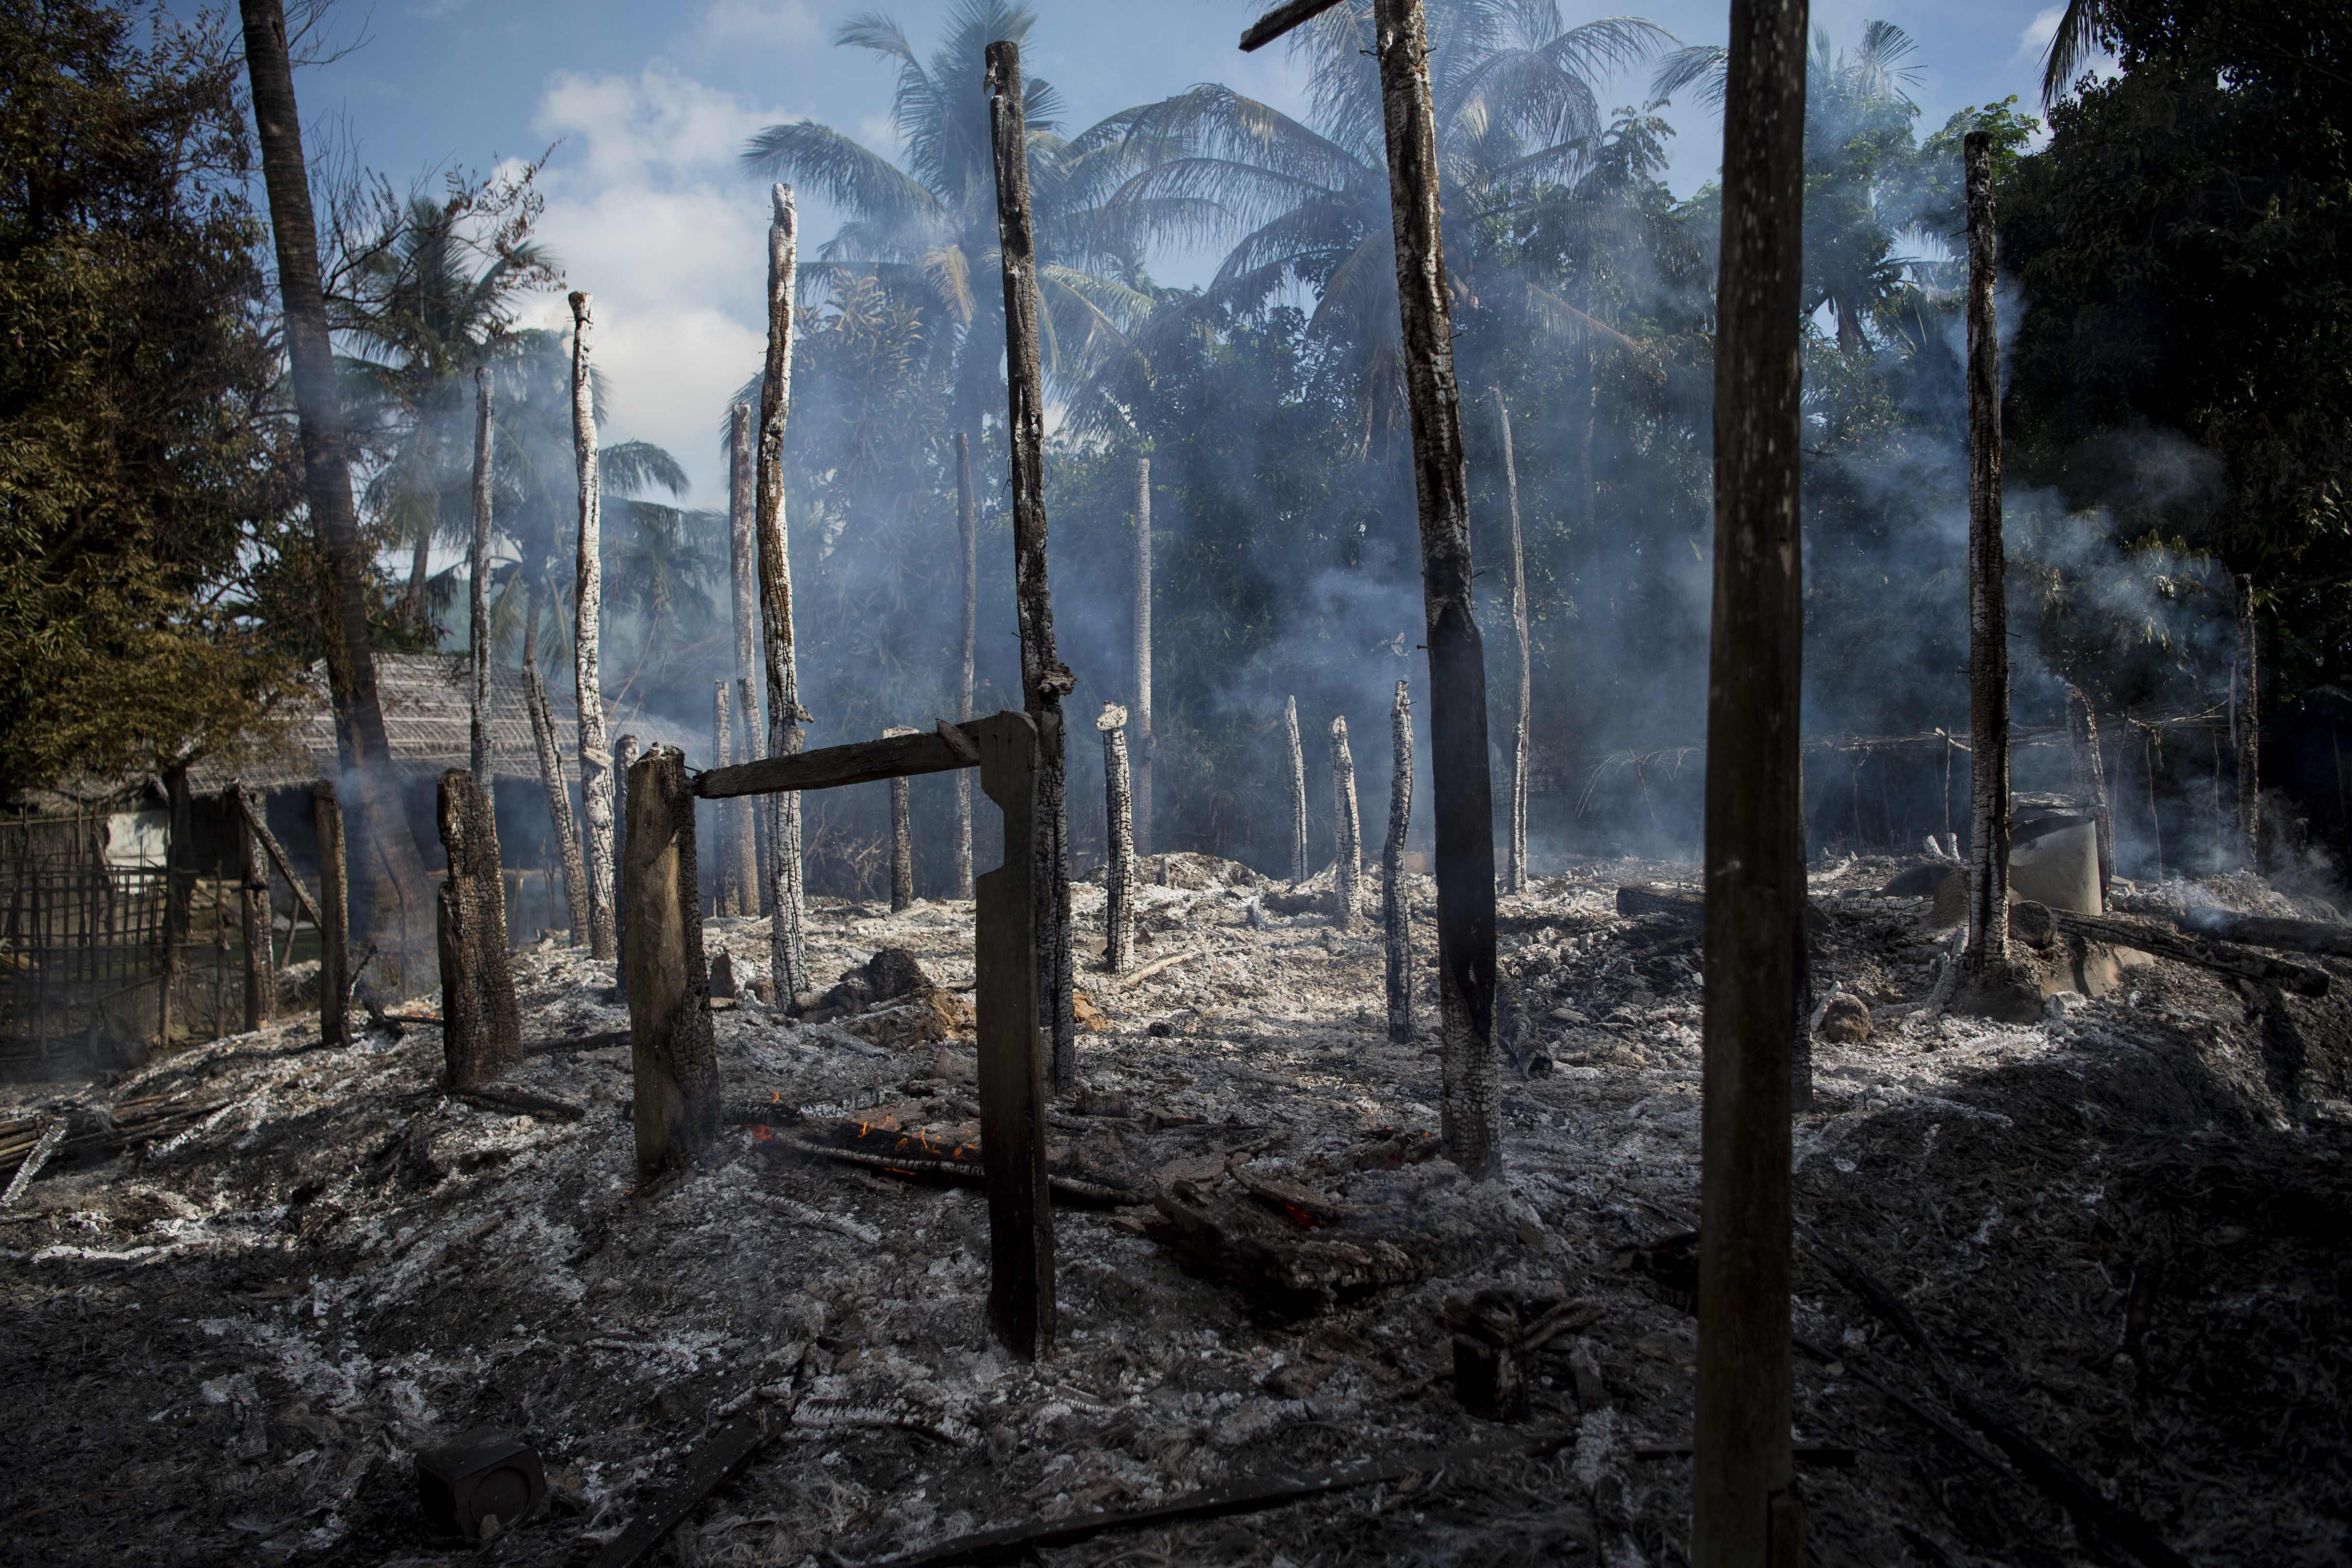 Preventing Genocide in Myanmar: Court Order Tries to Protect Rohingya Muslims Where Politics Has Failed